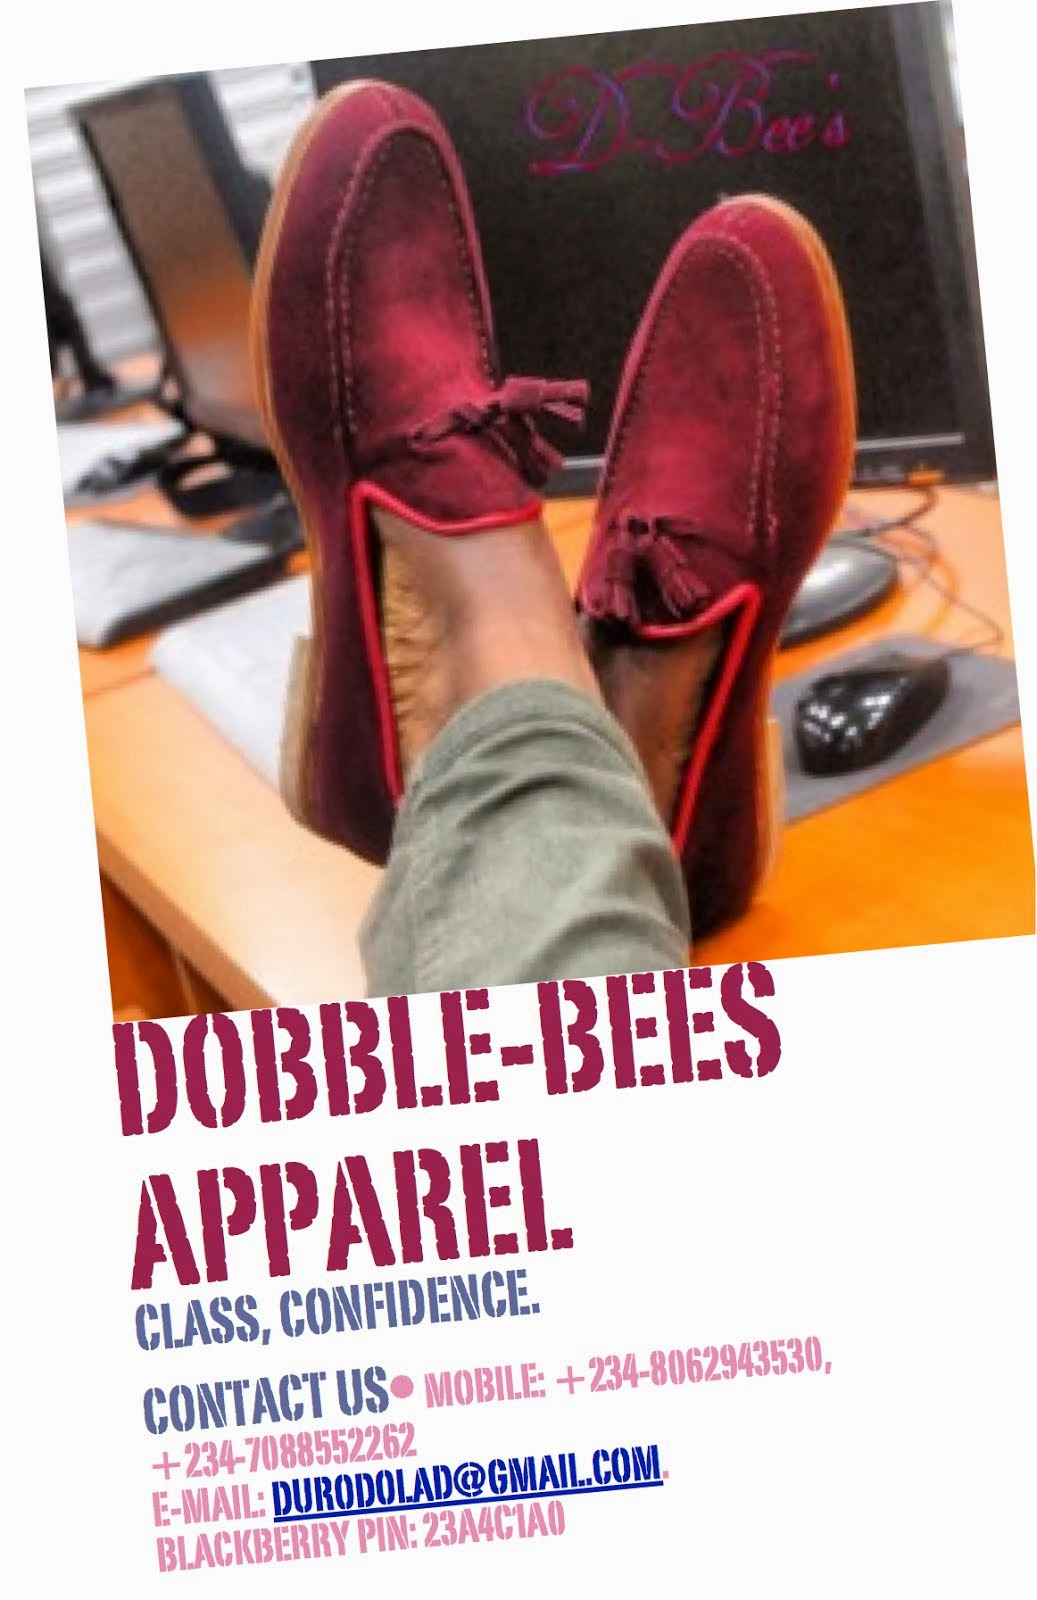 DOBBLE-BEES APPAREL